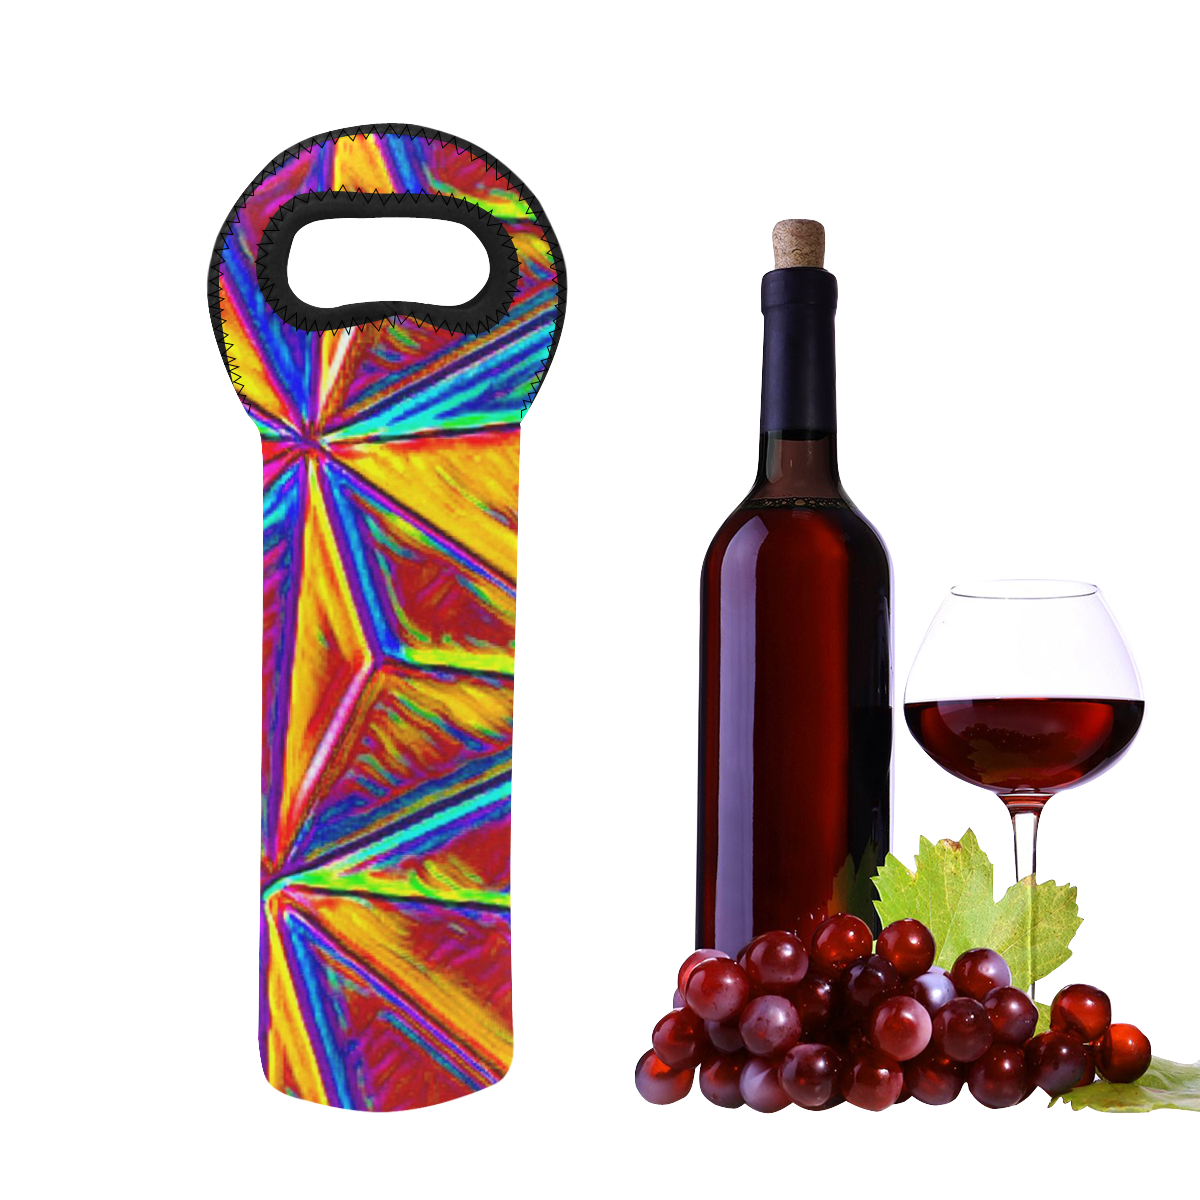 Vivid Life  by JamColors Neoprene Wine Bag